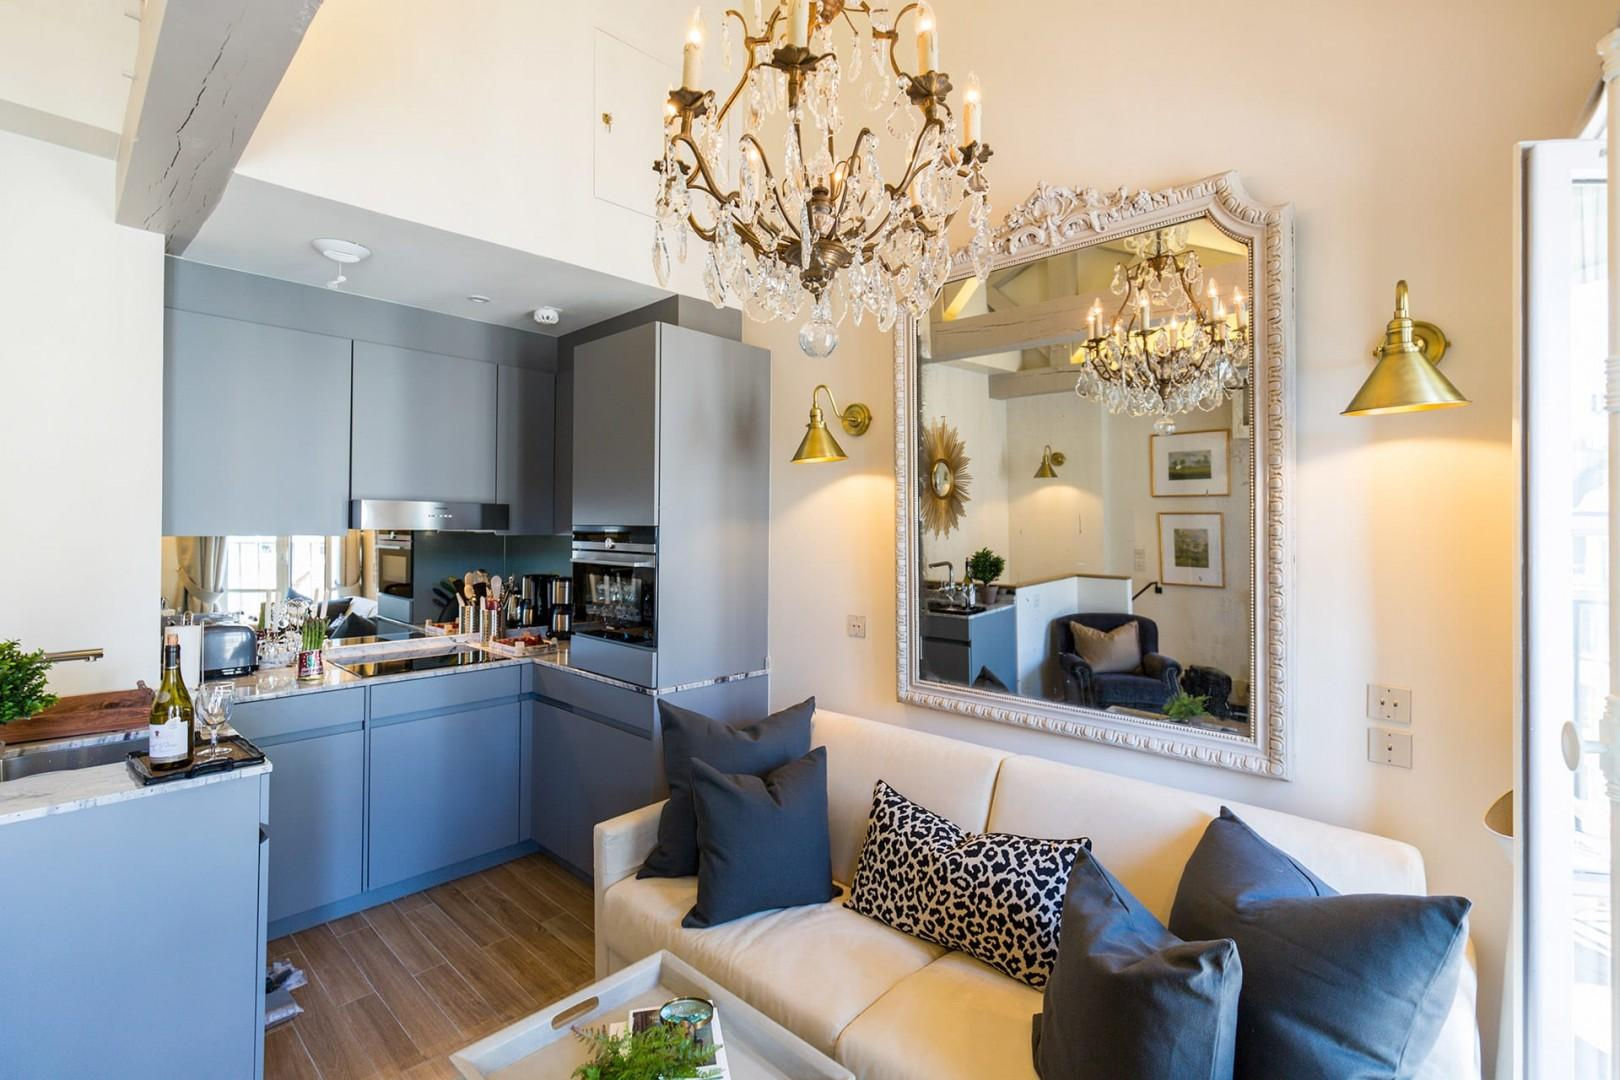 The open-plan living room, dining area and fully equipped kitchen area great for entertaining.